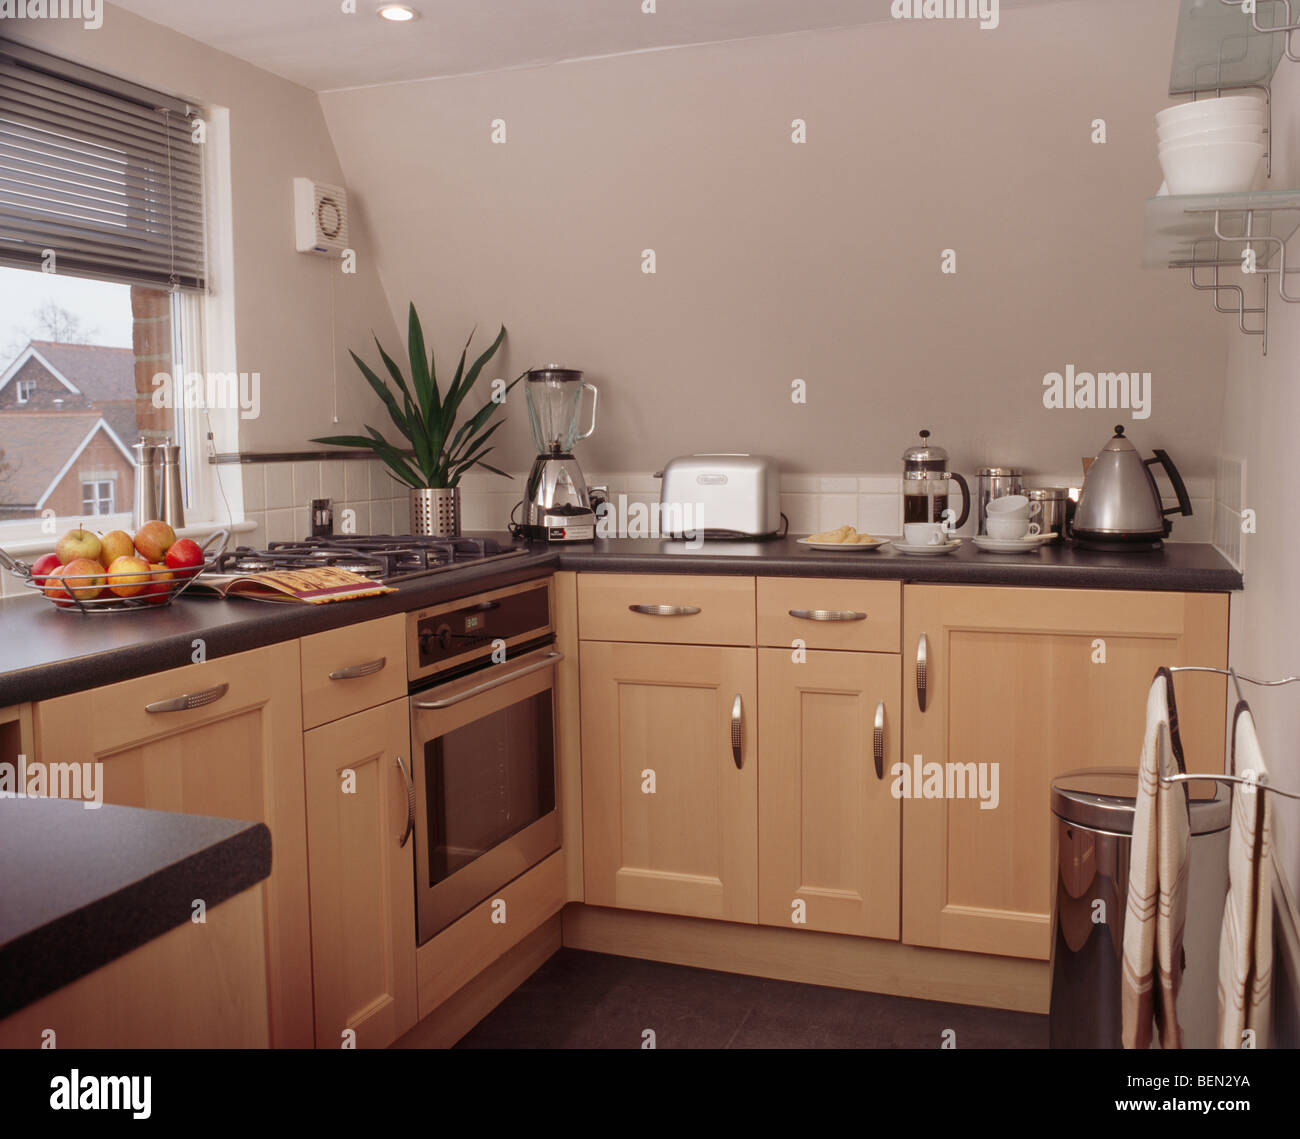 Pale wood fitted units in small apartment kitchen with small ...